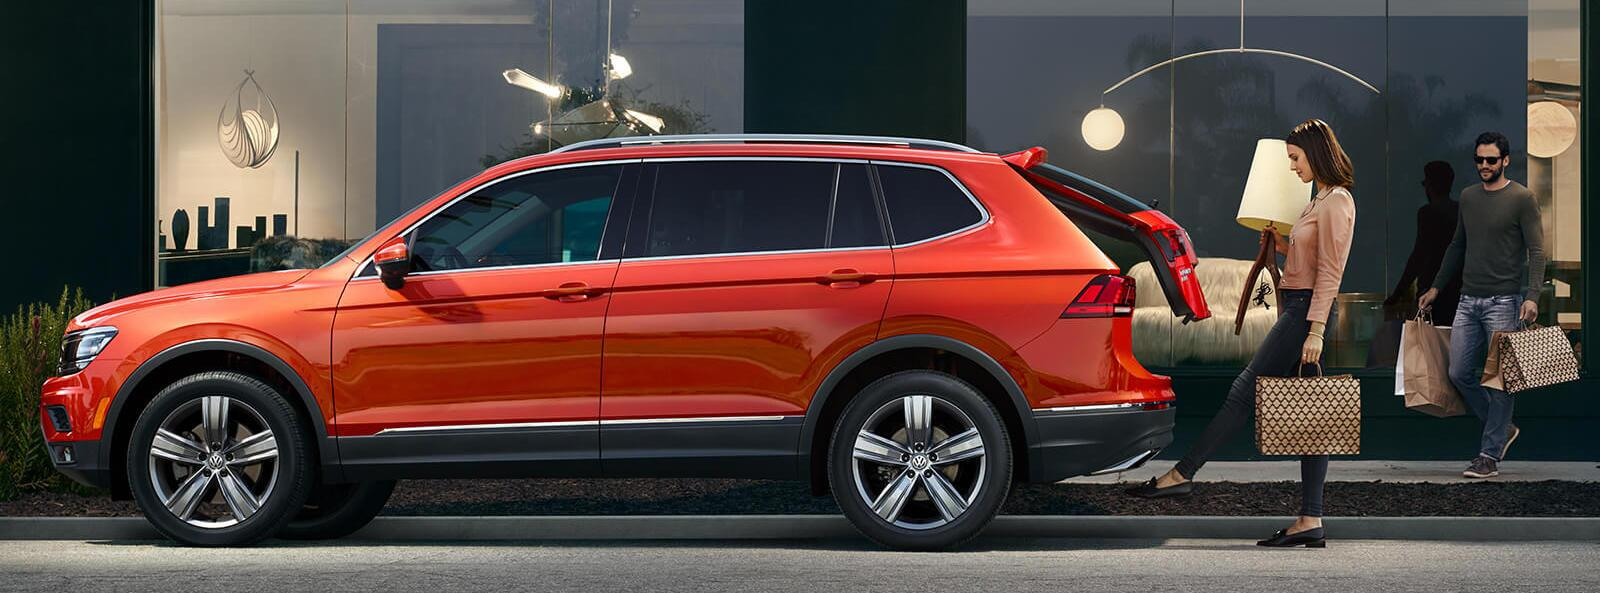 2019 Volkswagen Tiguan SUV vs the competition at our San Diego Volkswagen dealership near Chula Vista